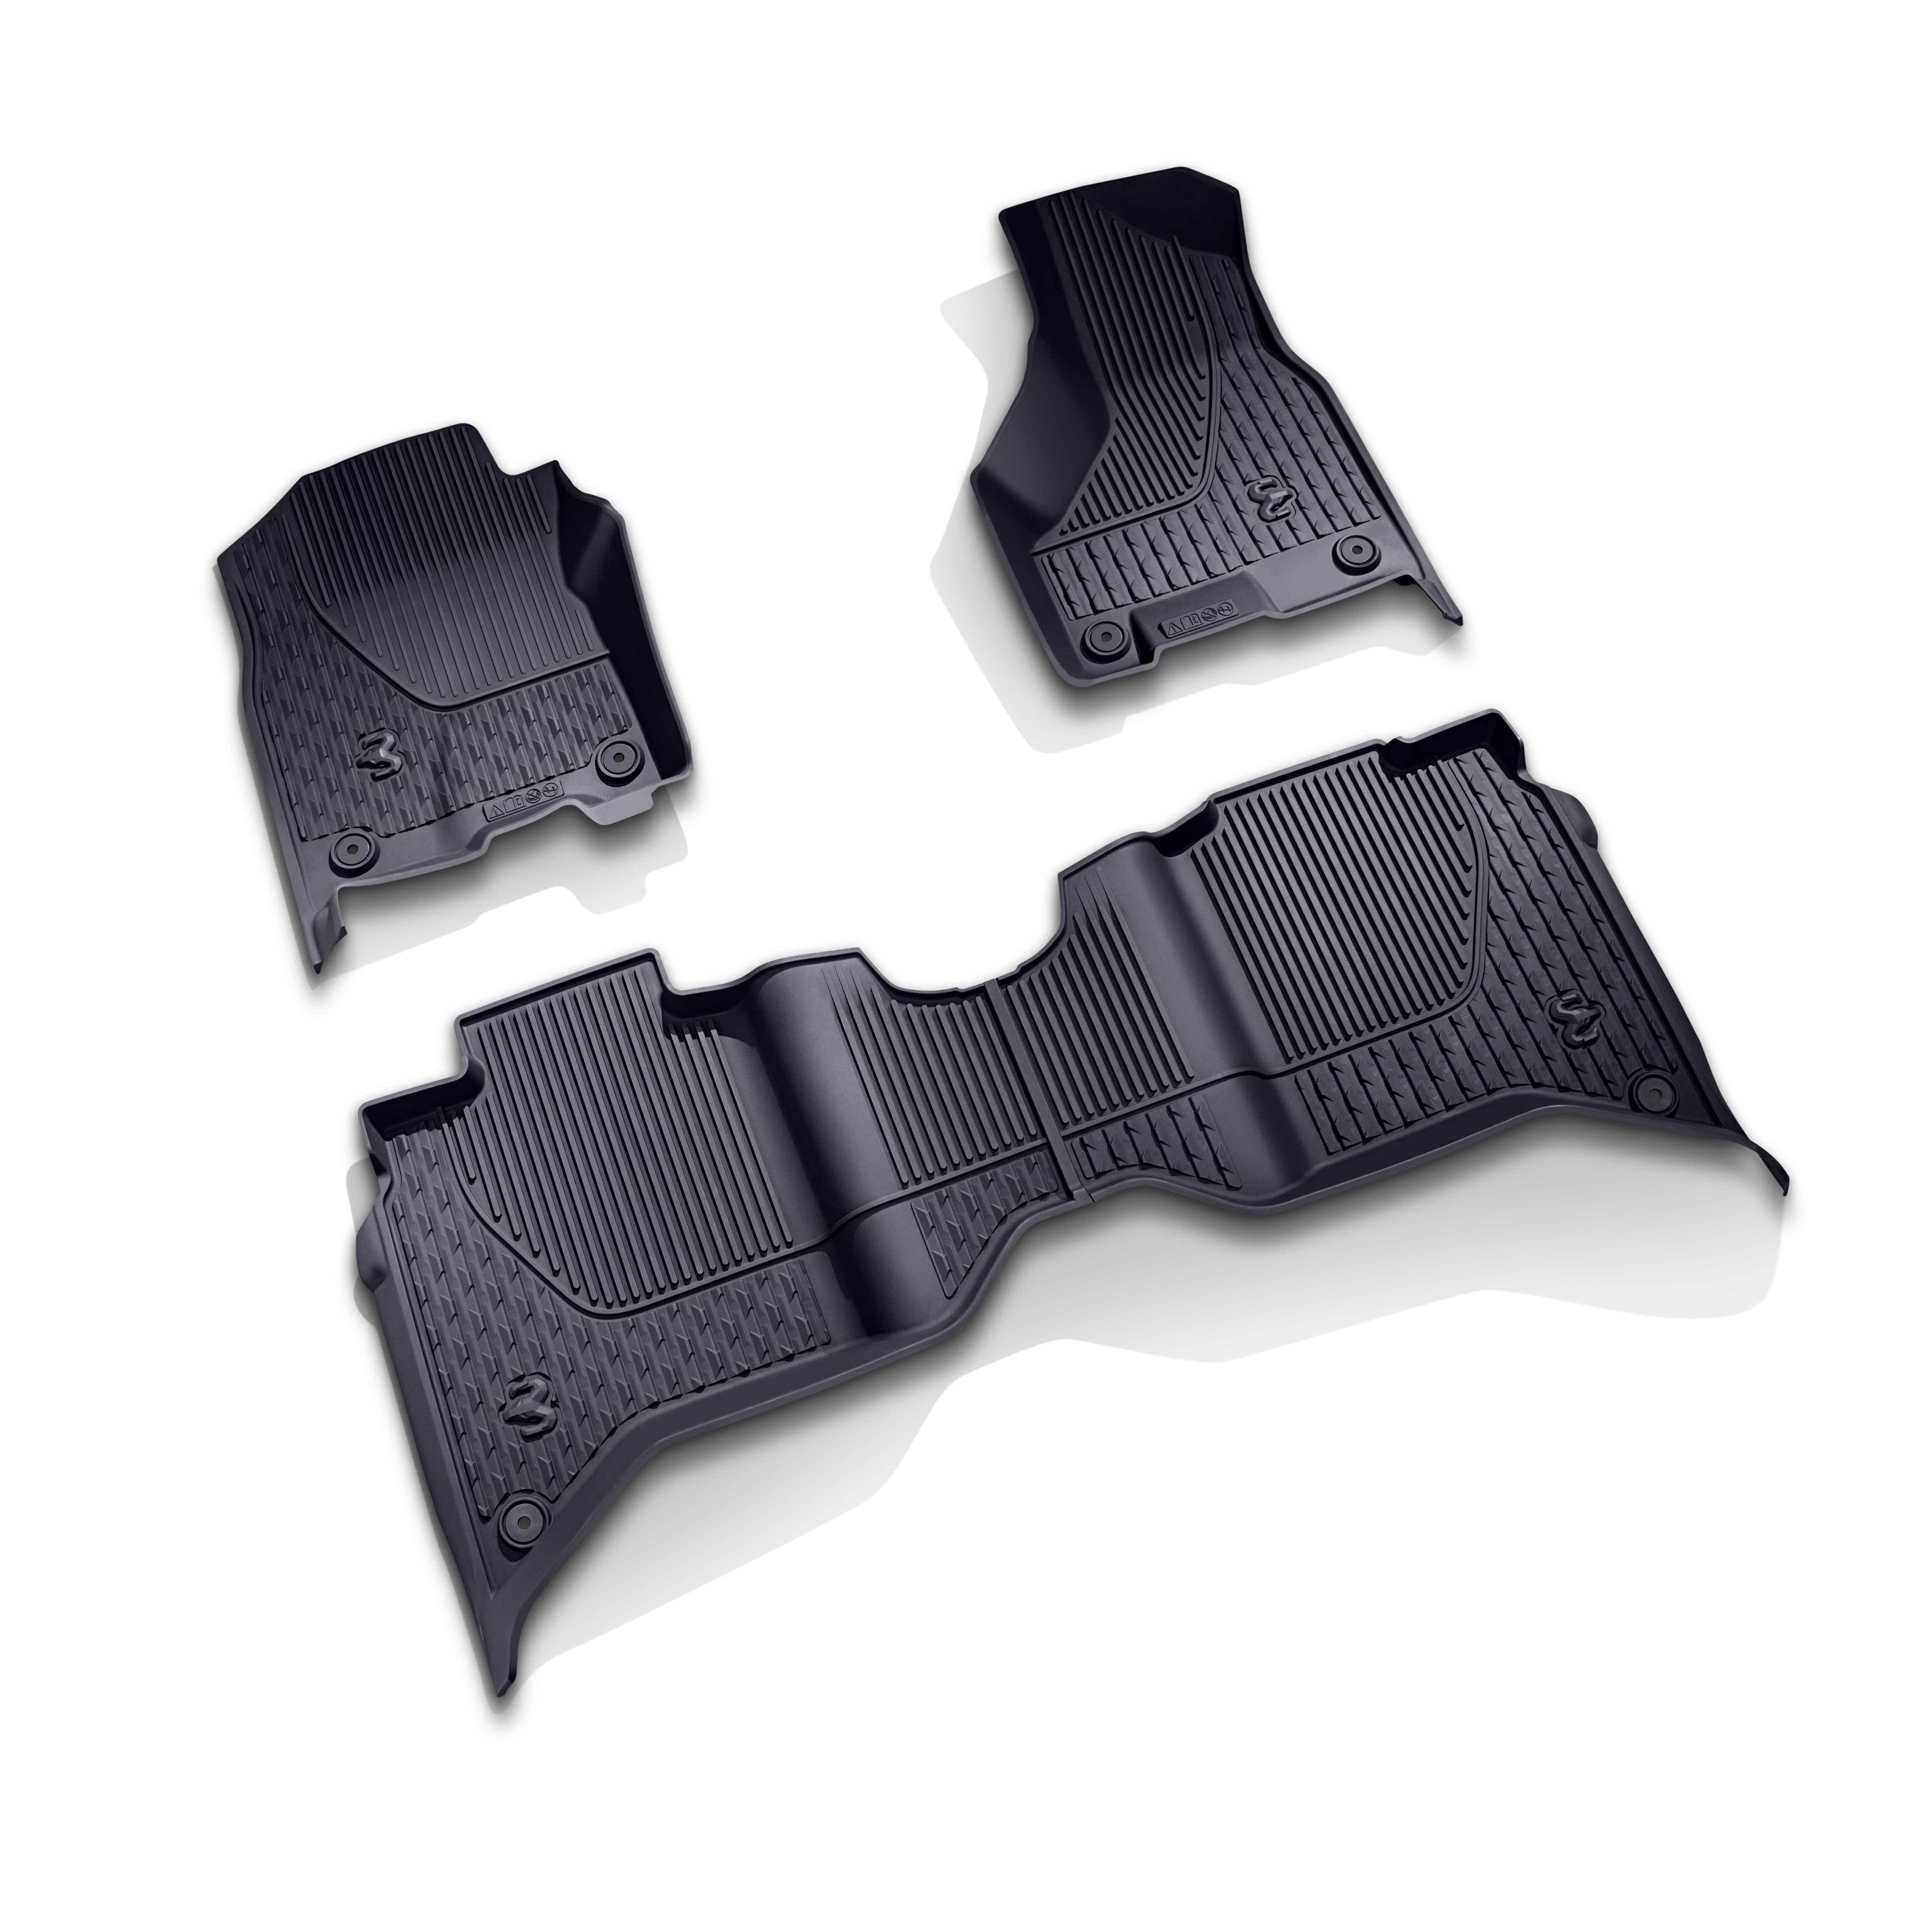 OEM 2020 Ram 2500 HD All-Weather Mat Kit - Crew Cab with Bucket Seats - Black (Part #82215754AC)